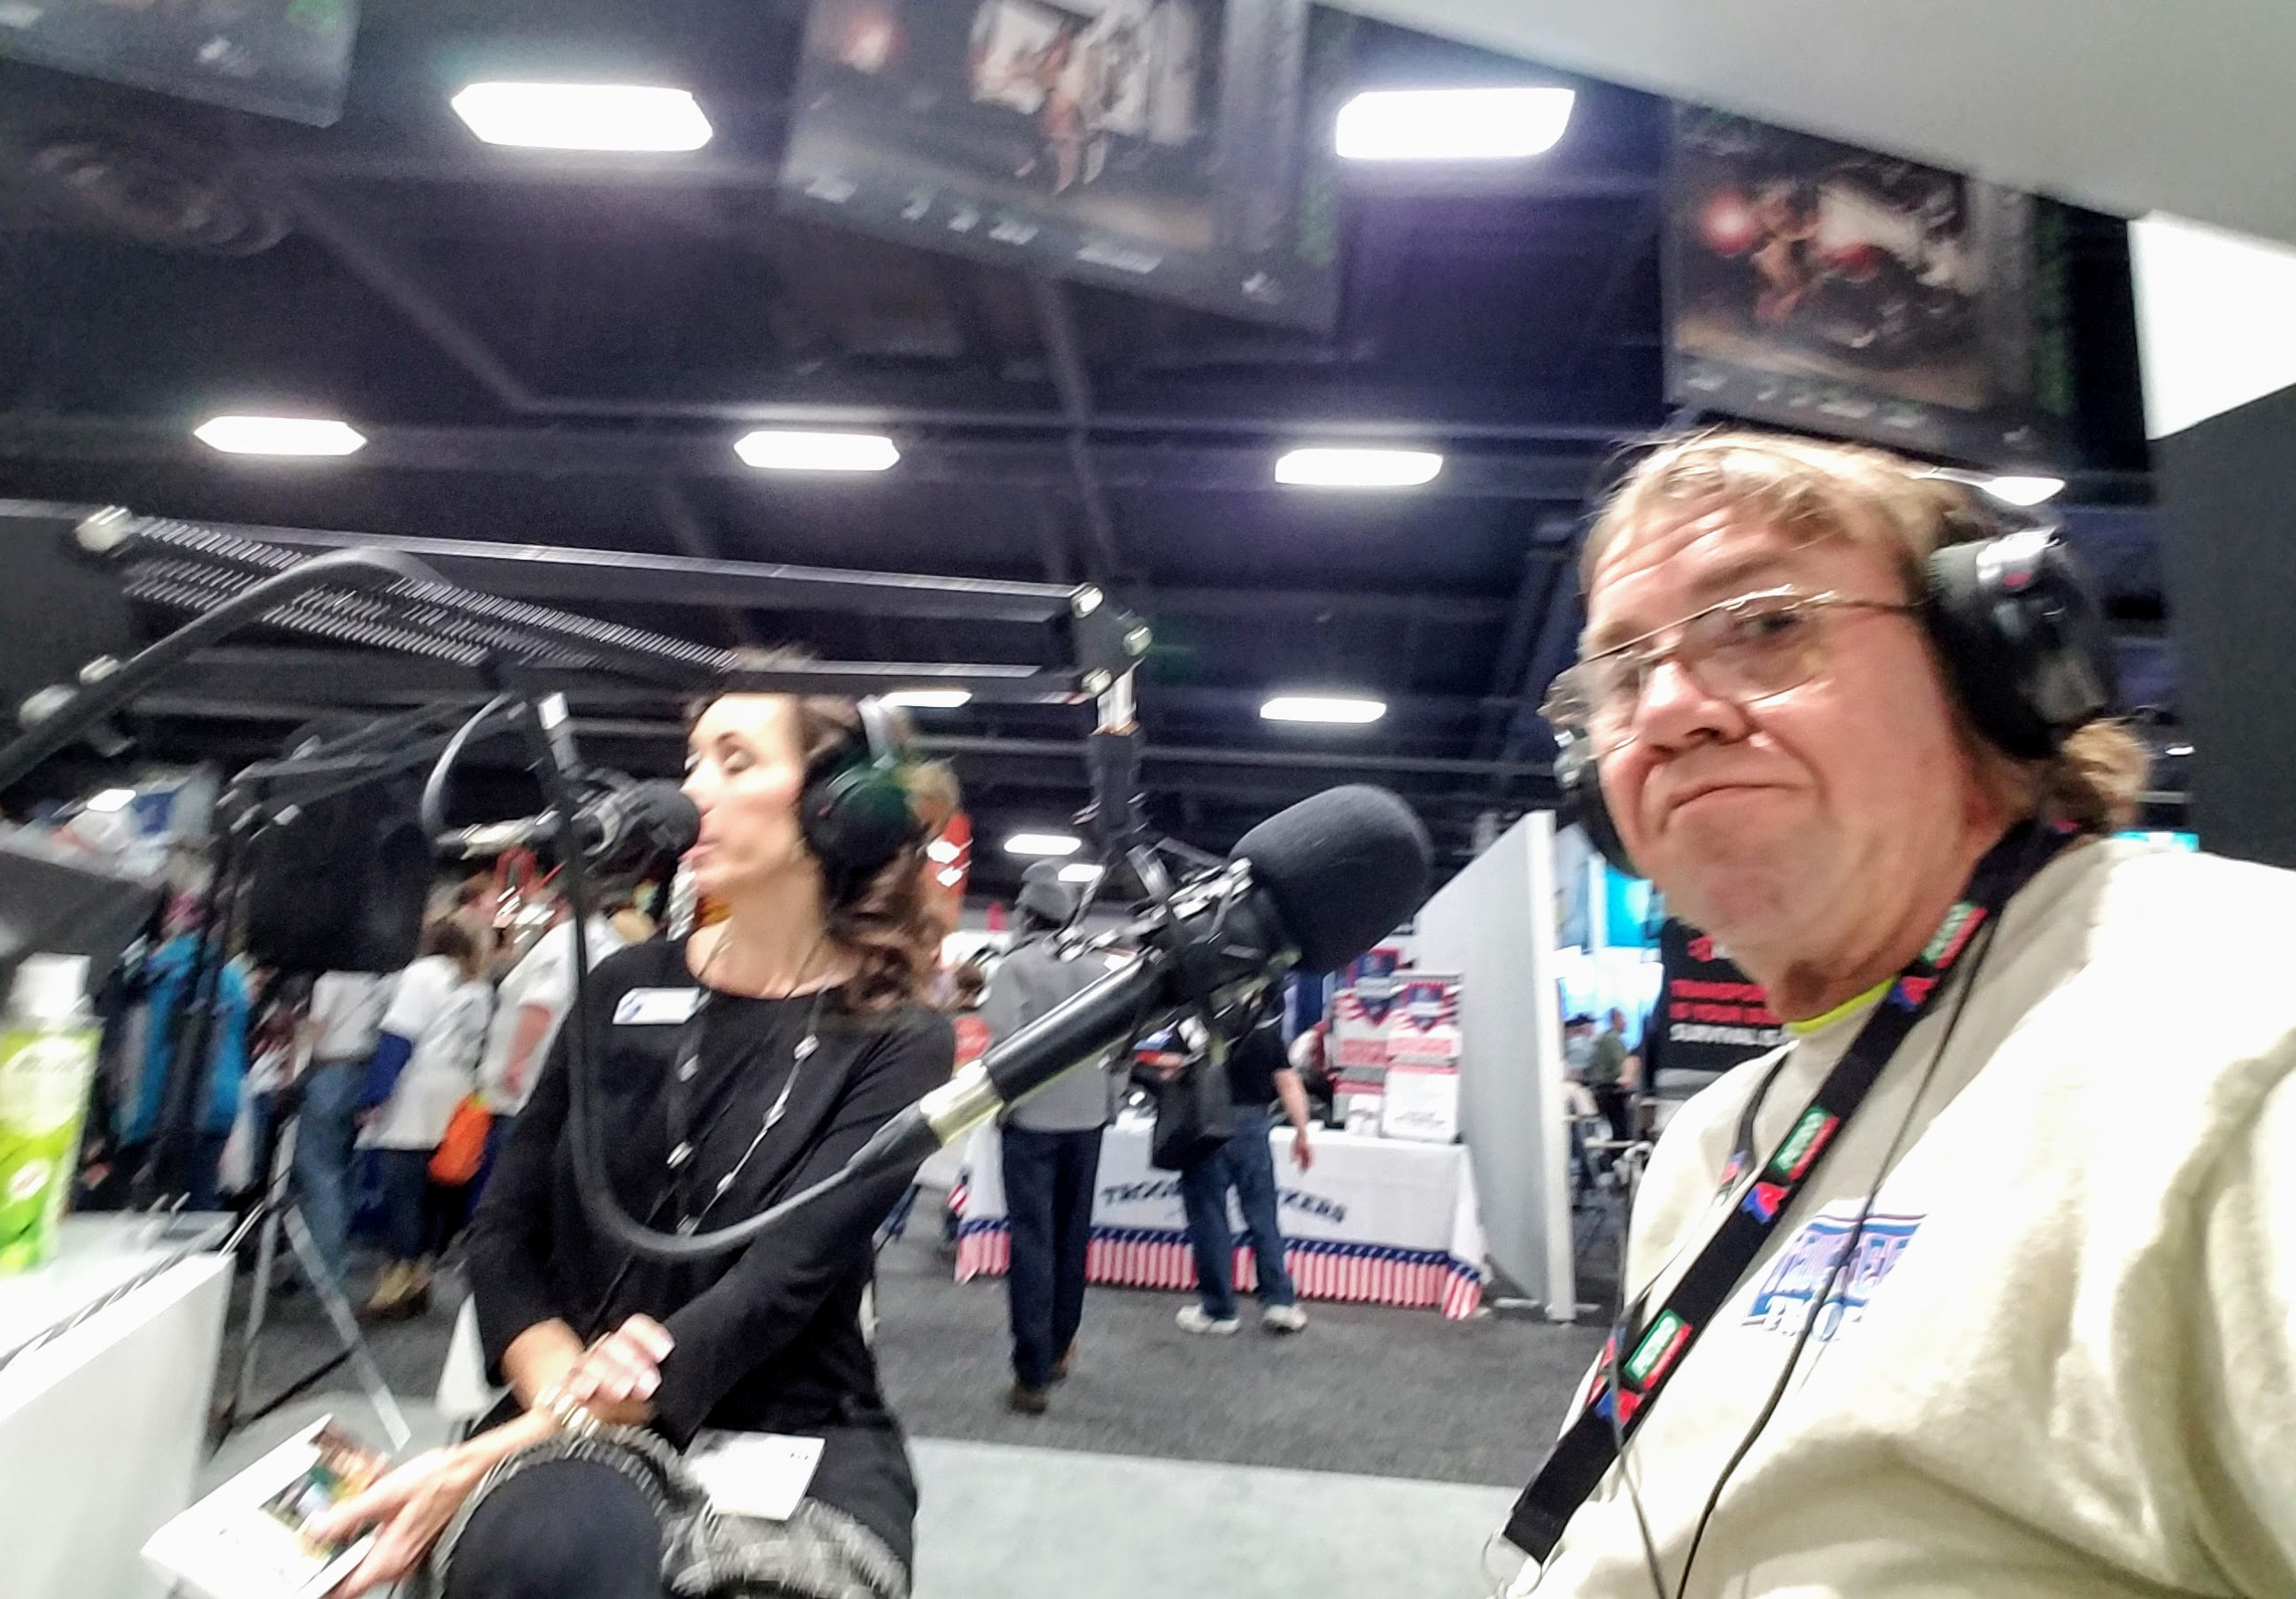 James takes a selfie as he and Julie Dillon, St. Christopher Truckers Development and Relief Fund's communications and wellness manager, are interviewed on the Hillbilly Express Radio Show during the 2017 Mid-America Trucking Show in Louisville, Kentucky.